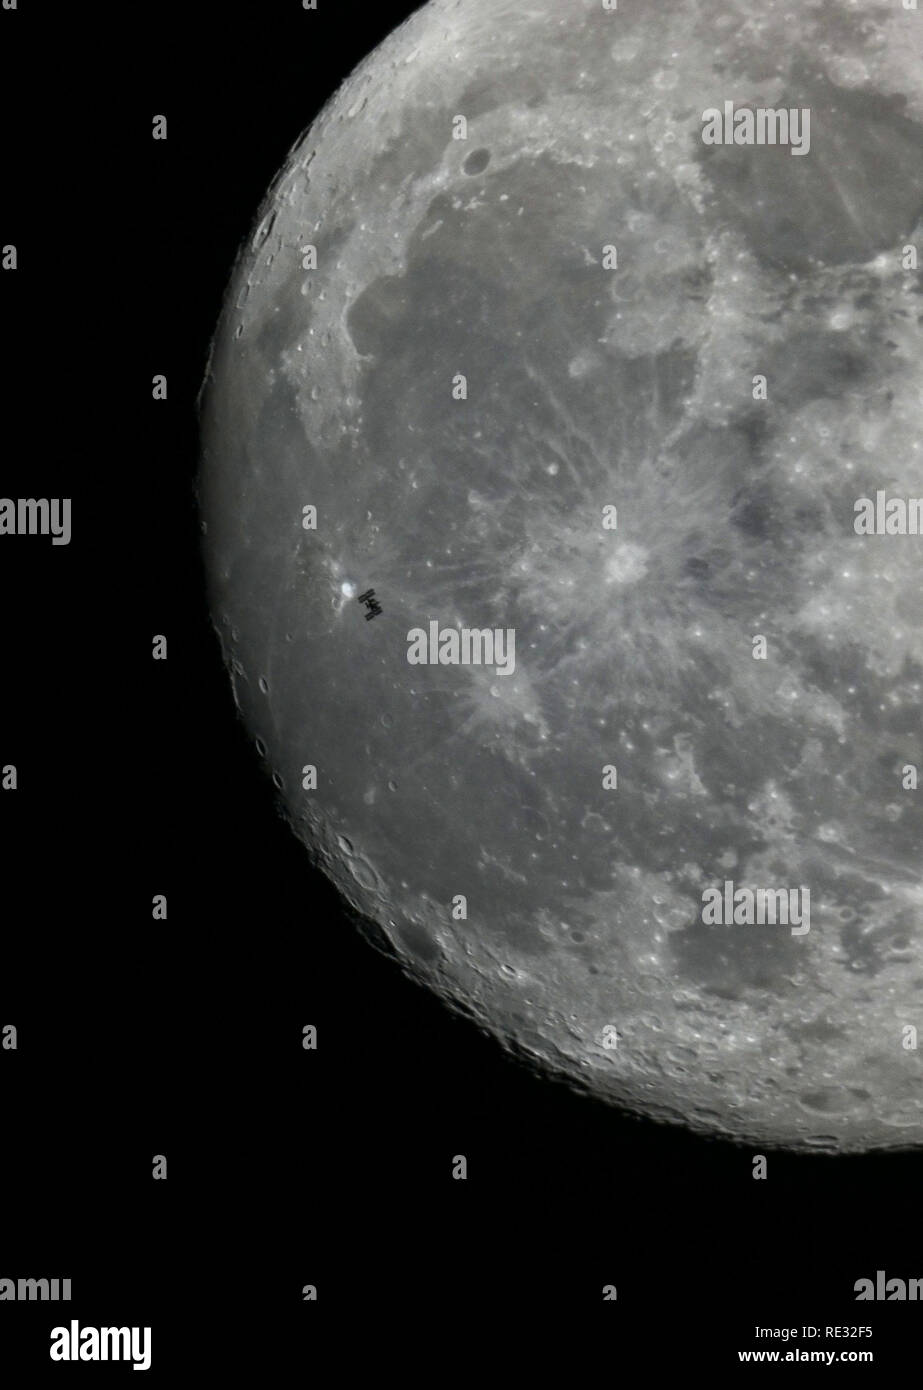 20 January 2019, North Rhine-Westphalia, Köln: The International Space Station ISS passes the moon and thus becomes visible for a short time as a silhouette. Photo: Henning Kaiser/dpa Credit: dpa picture alliance/Alamy Live News - Stock Image